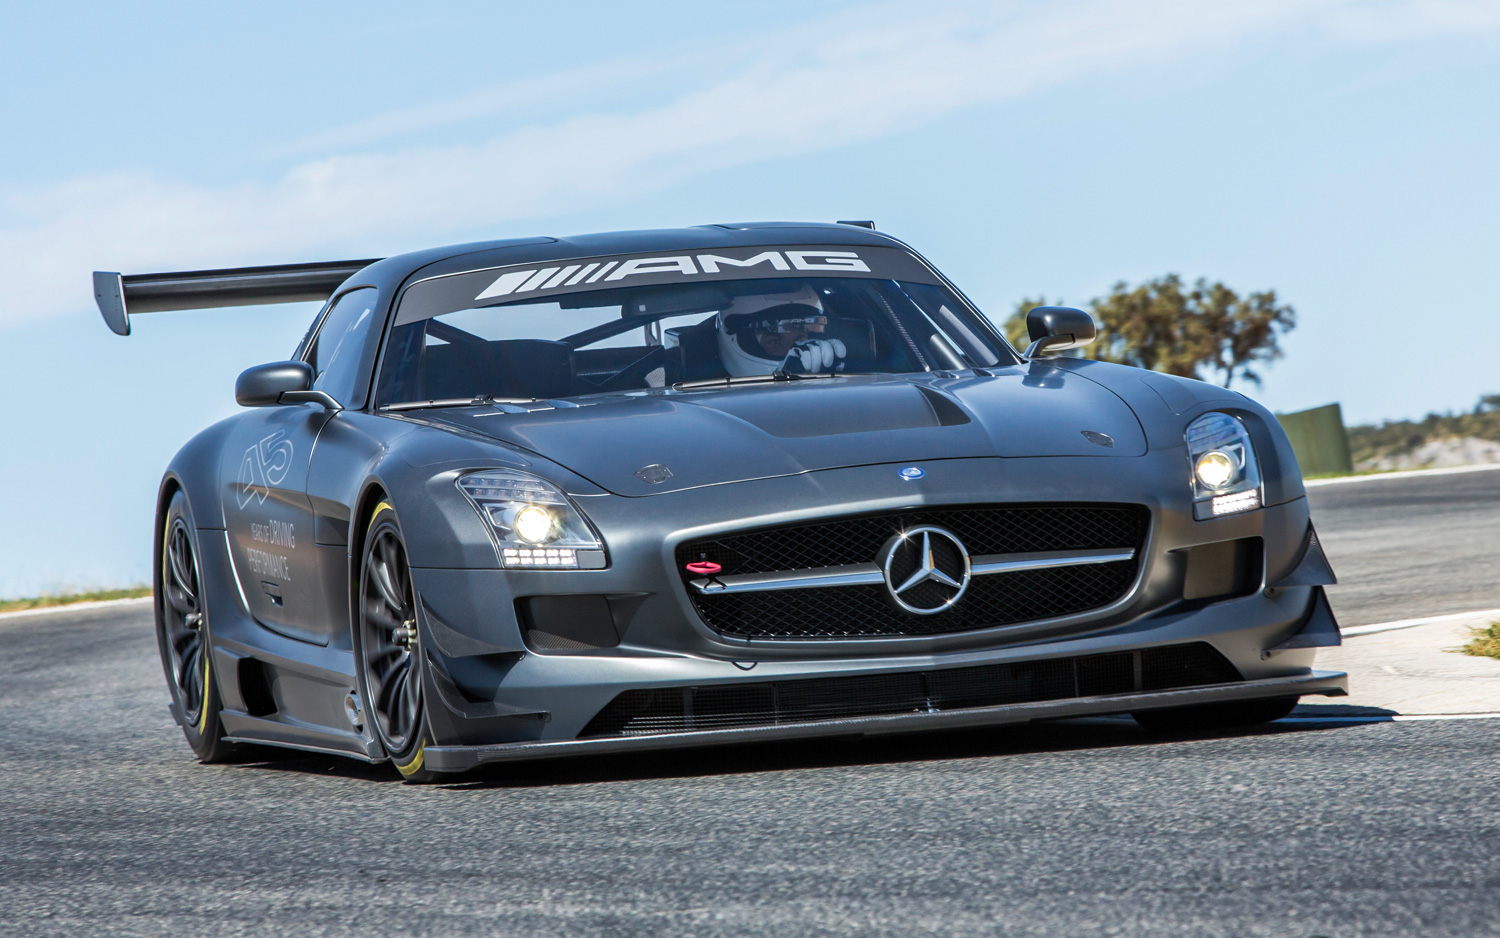 Project cars la liste des 9 mercedes benz plan te for What country makes mercedes benz cars